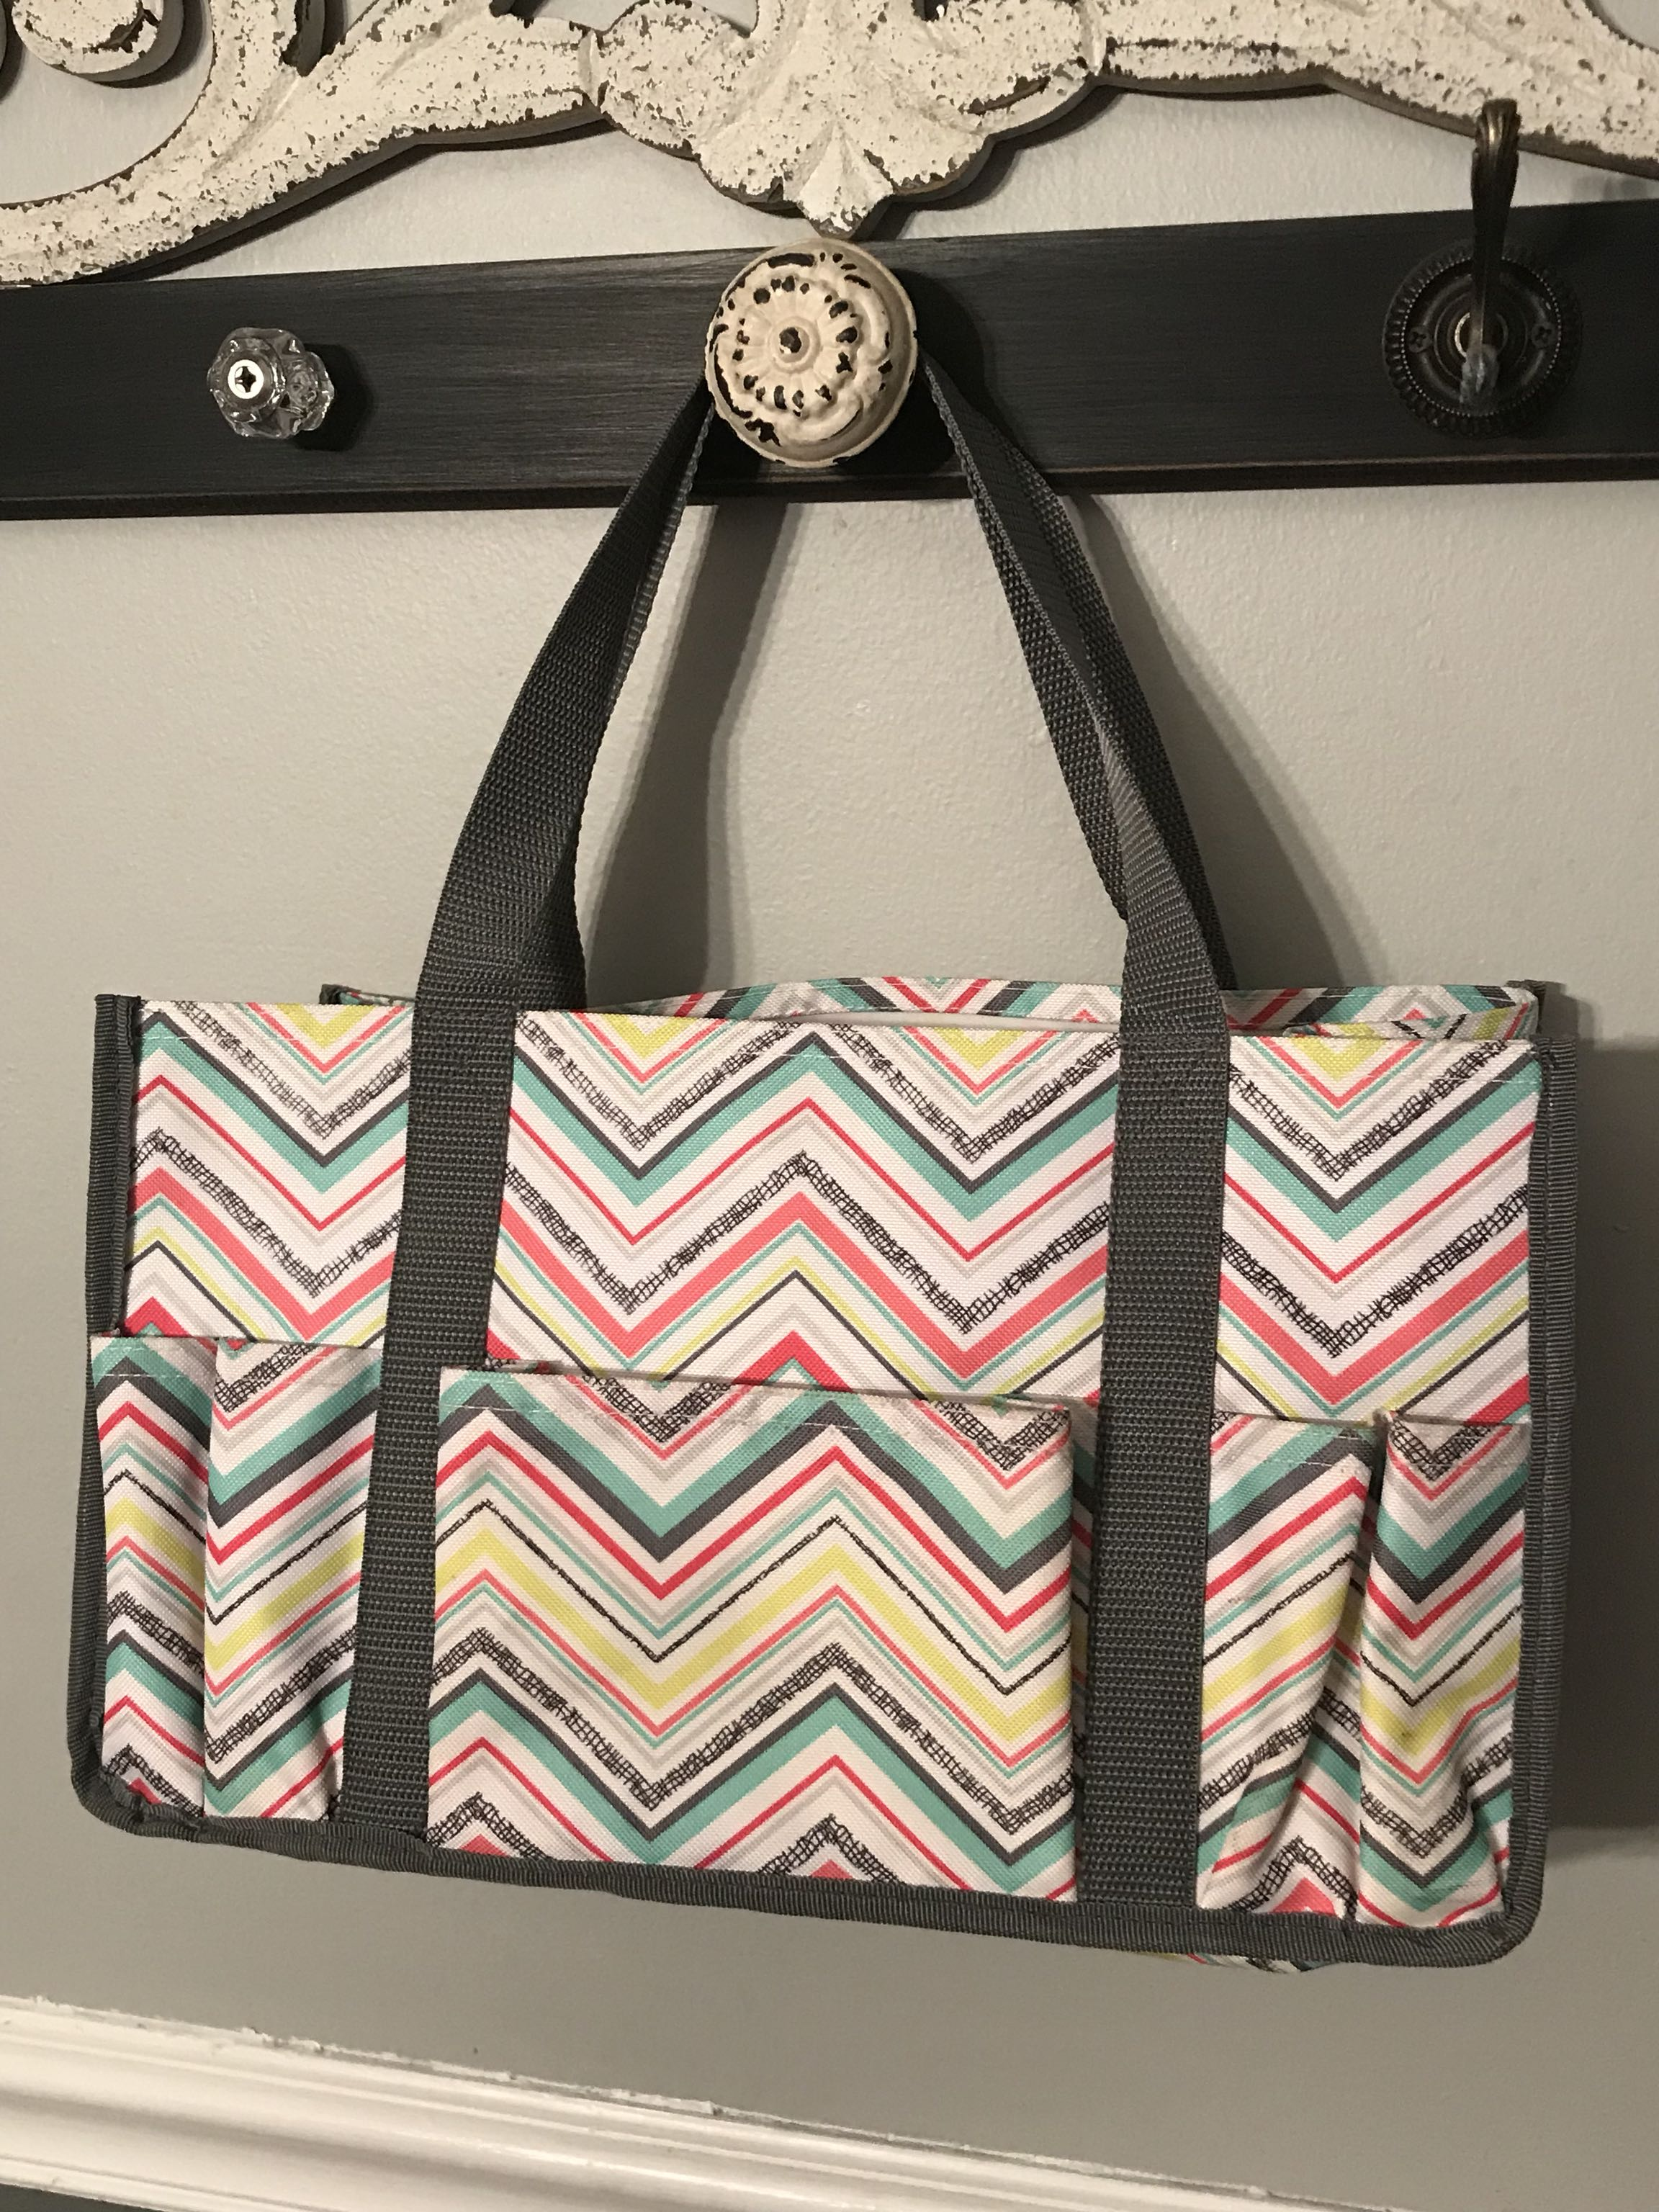 Thirty one bag w/ pockets across the front and on both ends